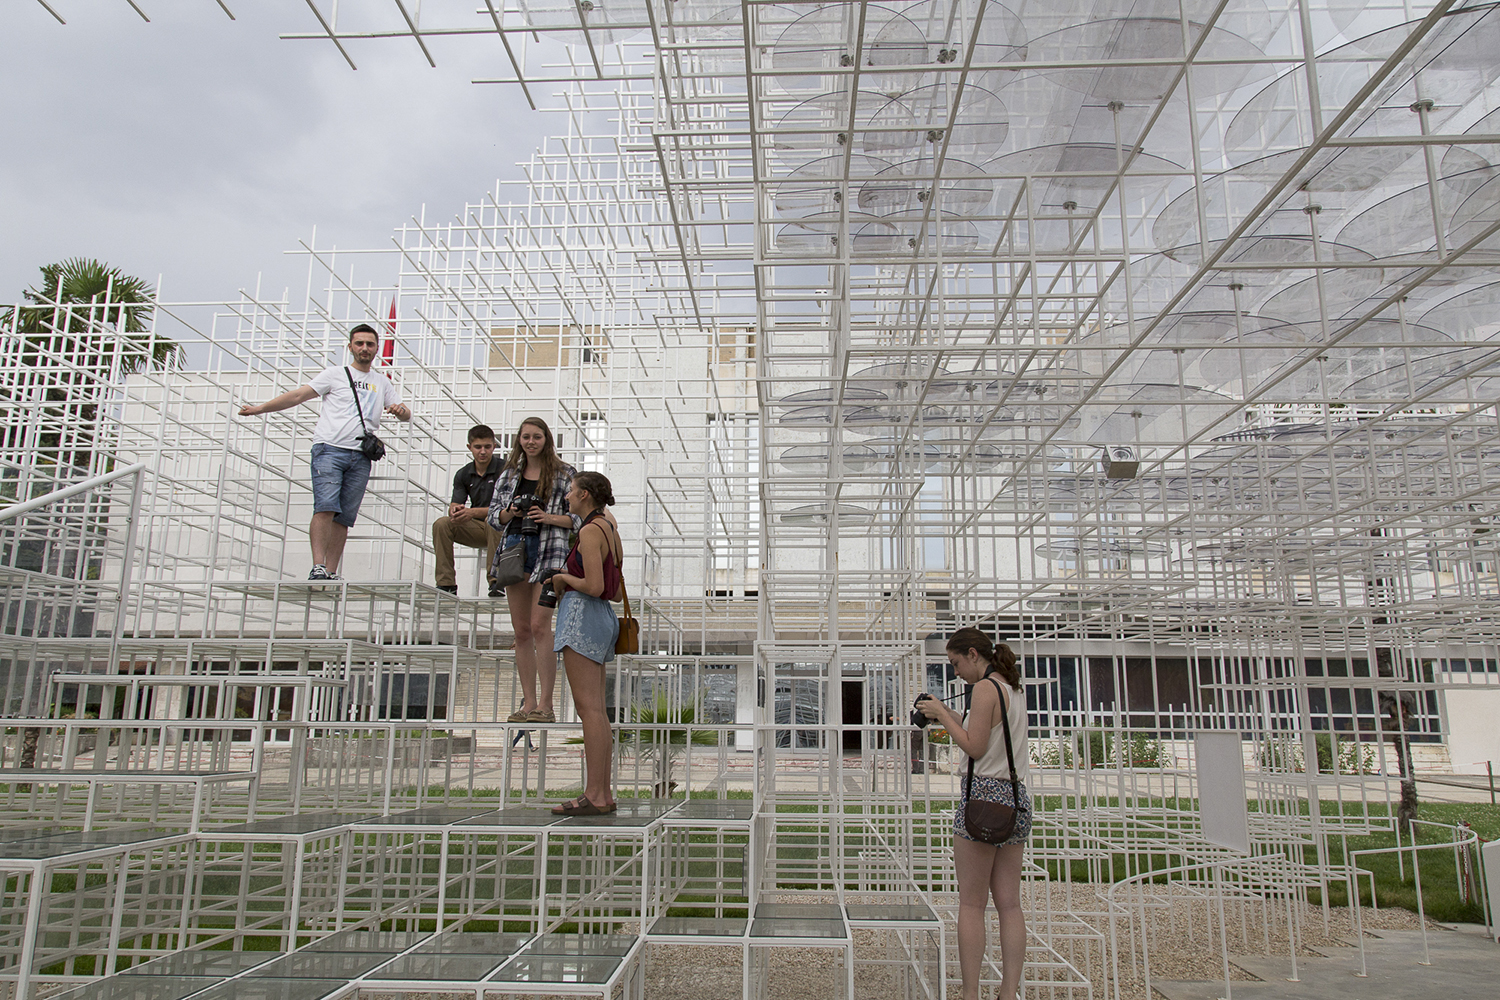 Students pose on a weird structure